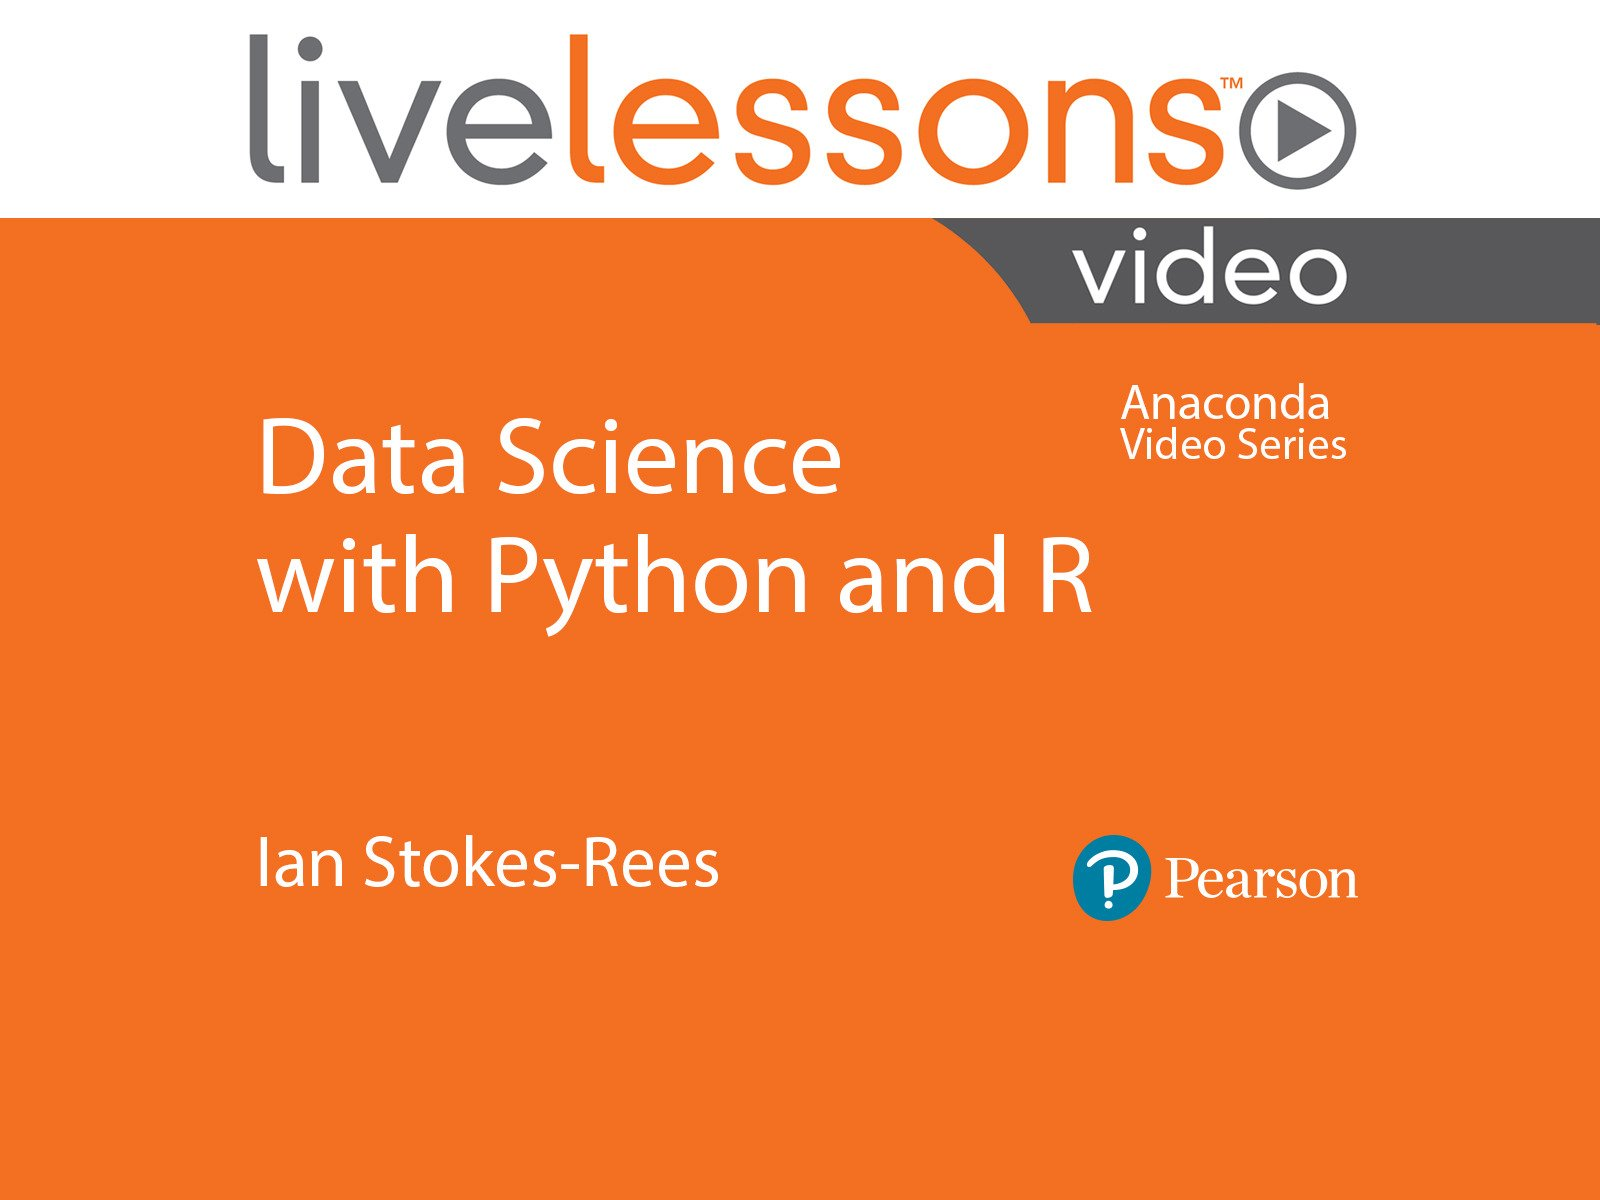 Amazon com: Watch Data Science with Python and R LiveLessons